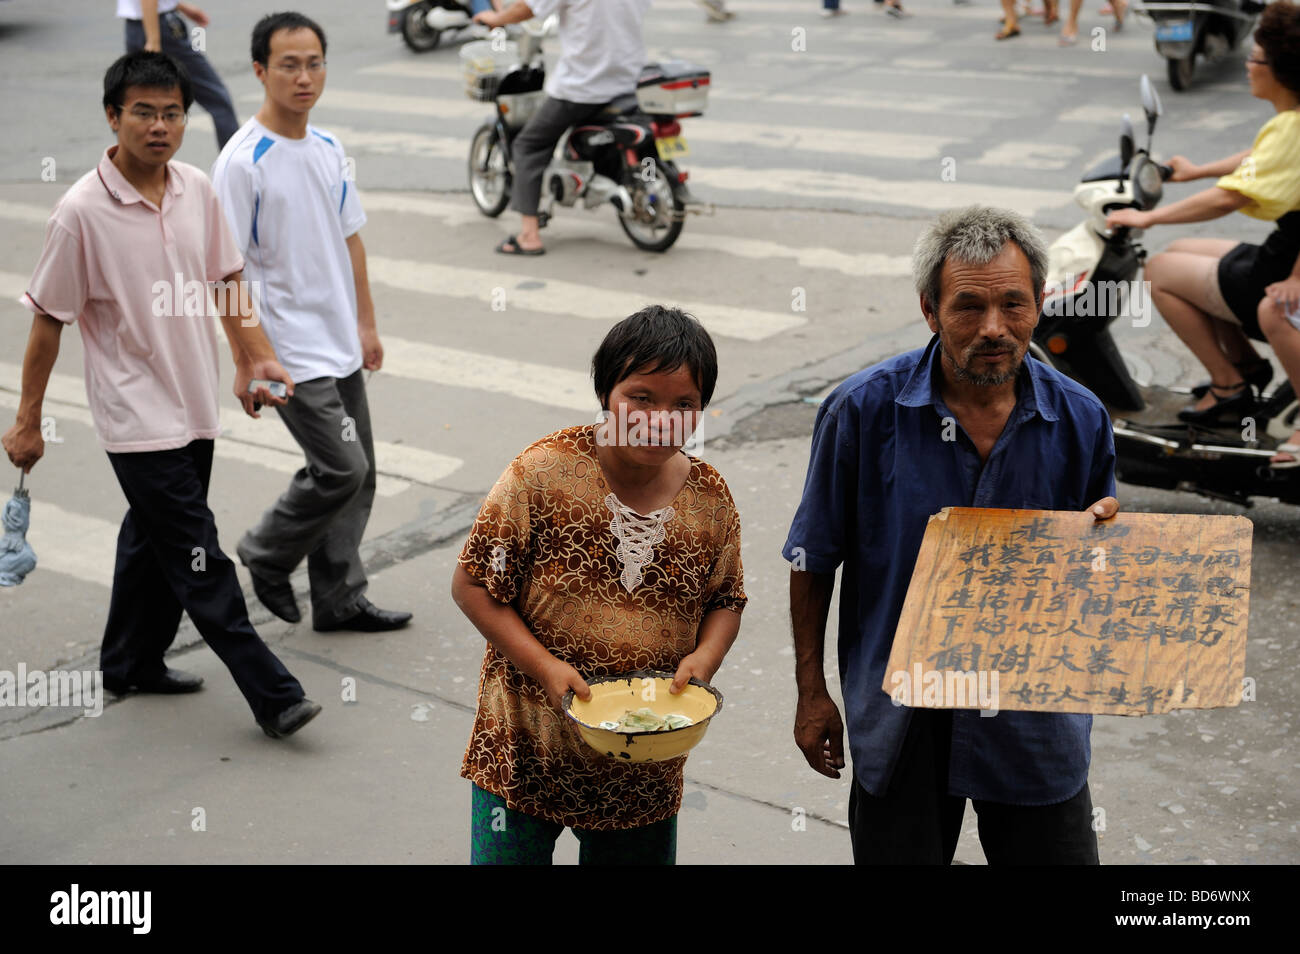 Chinese couple begging in Zhumadian, Henan, China. 05-Aug-2009 - Stock Image